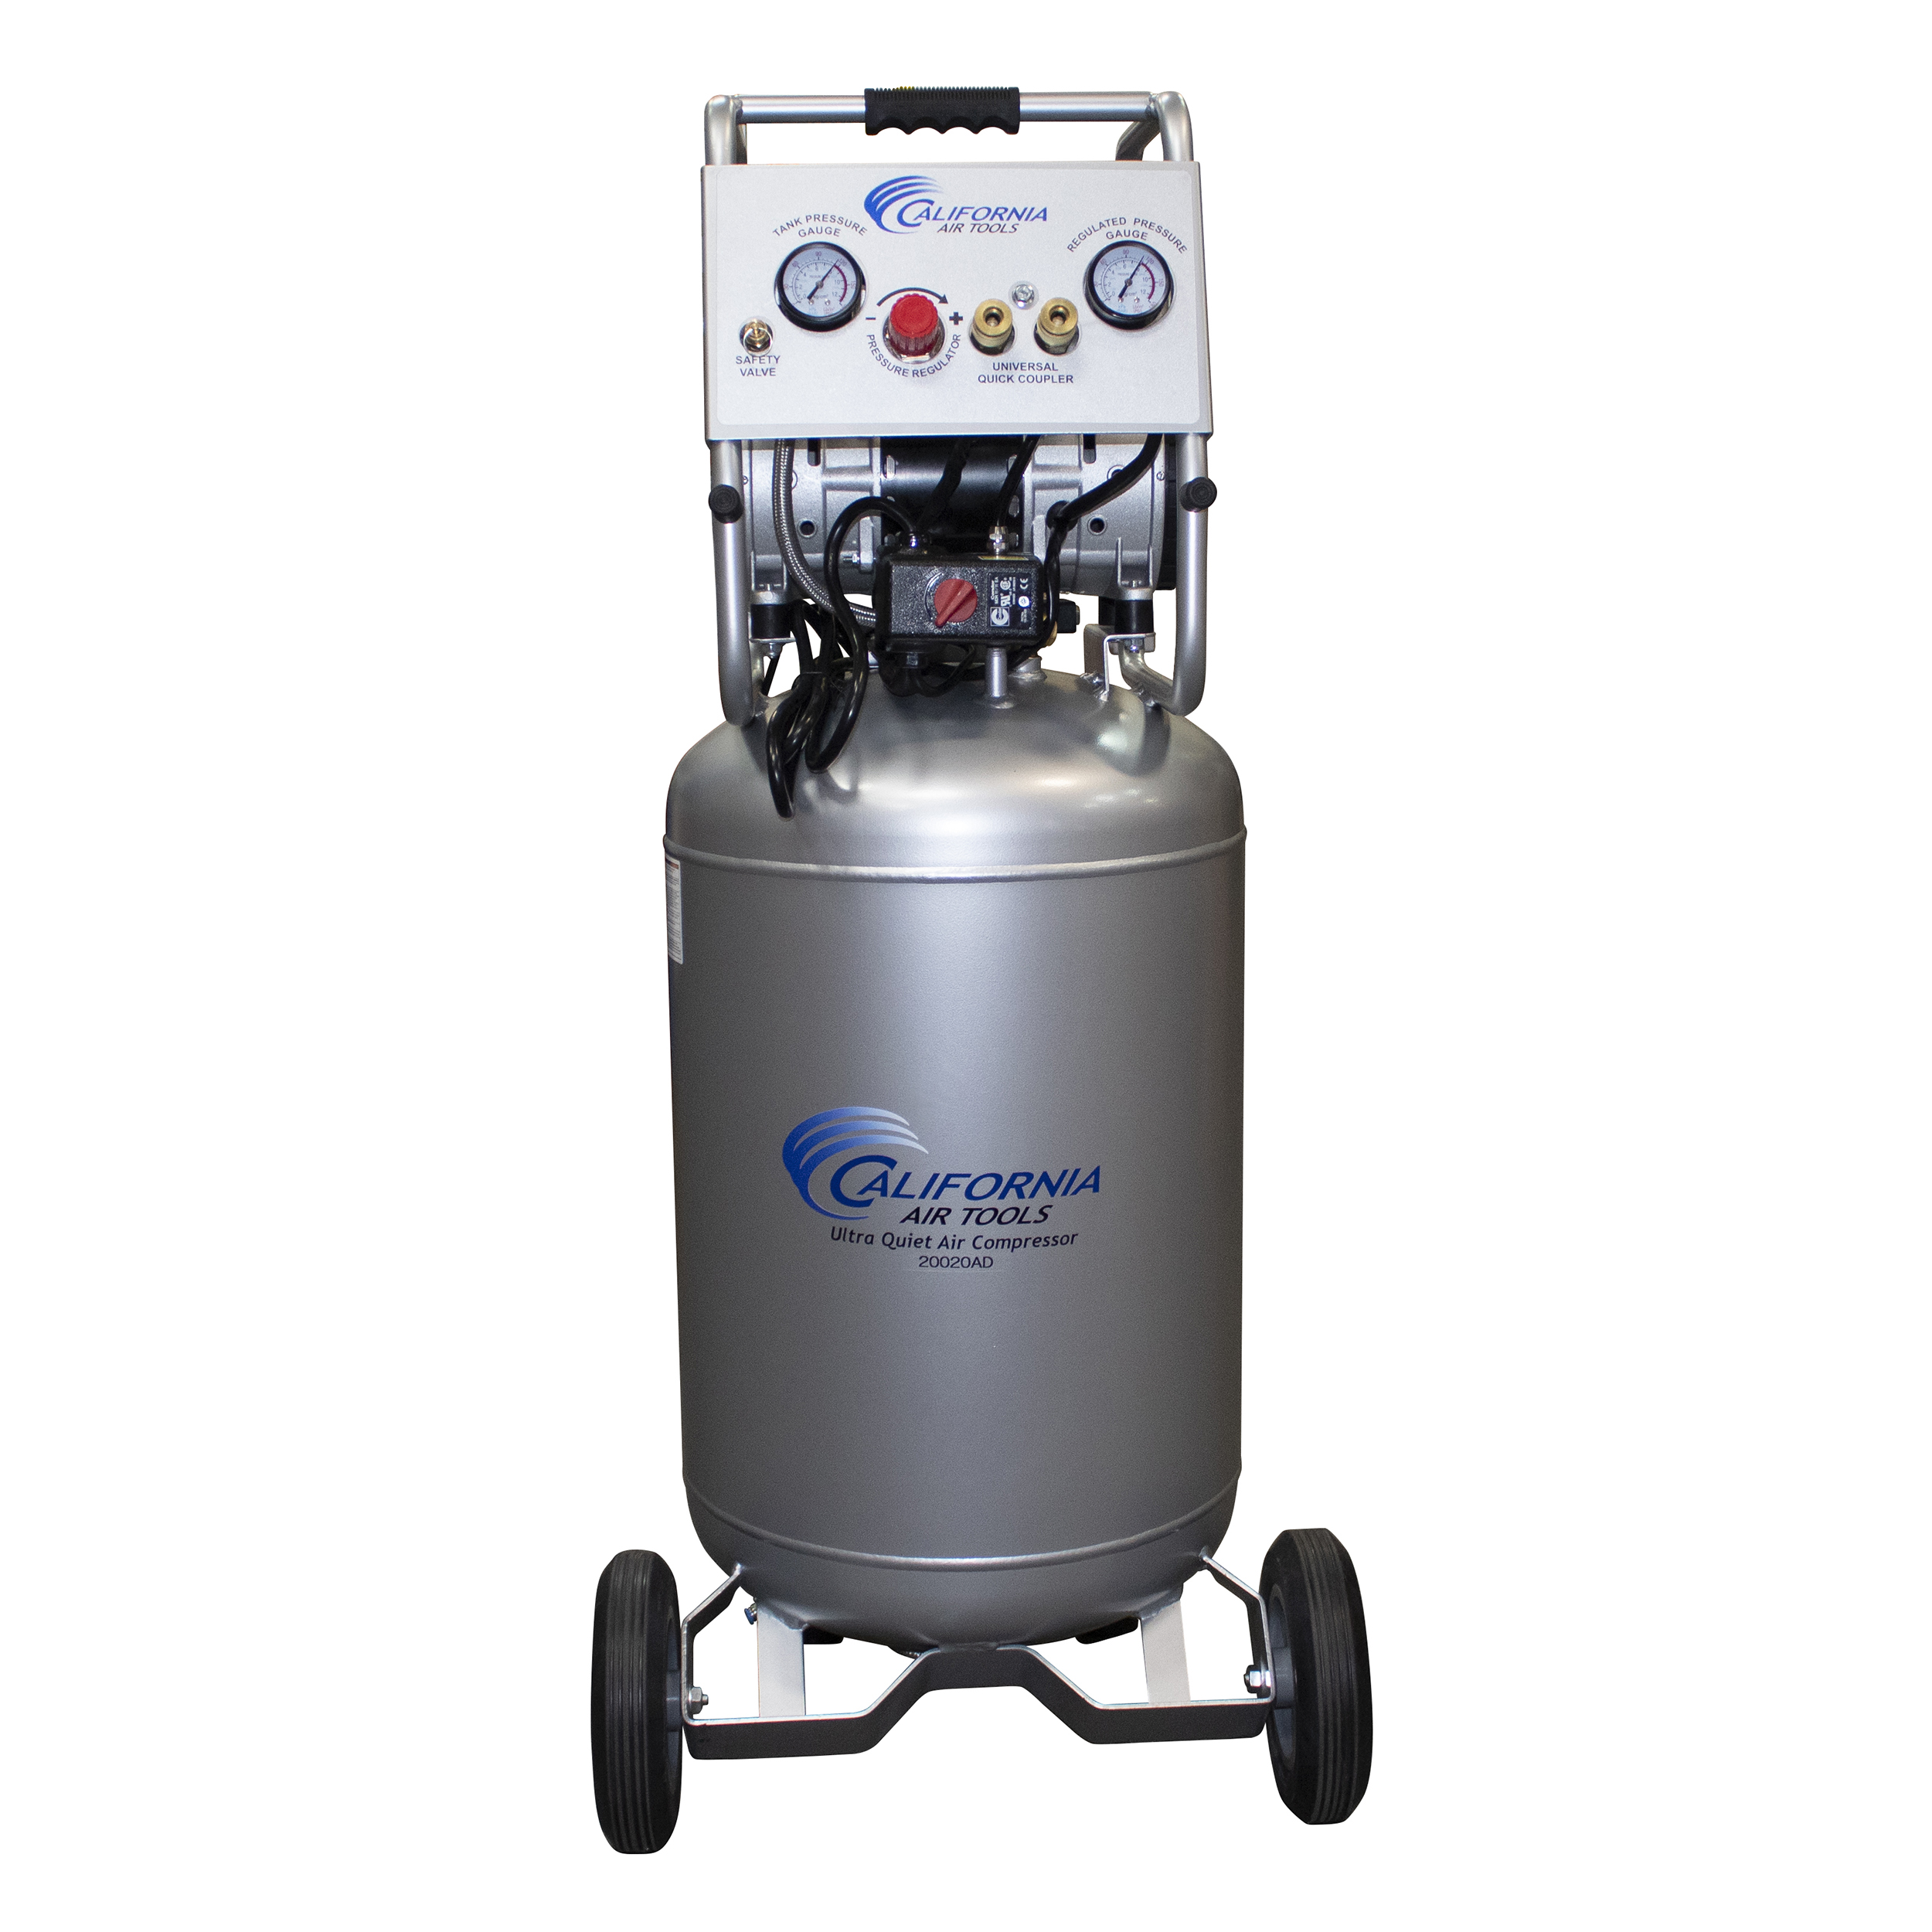 Ultra Quiet and Oil-Free Air Compressor 2 HP, 20 Gallon Steel Tank with Auto Drain, 220V 60 Hertz